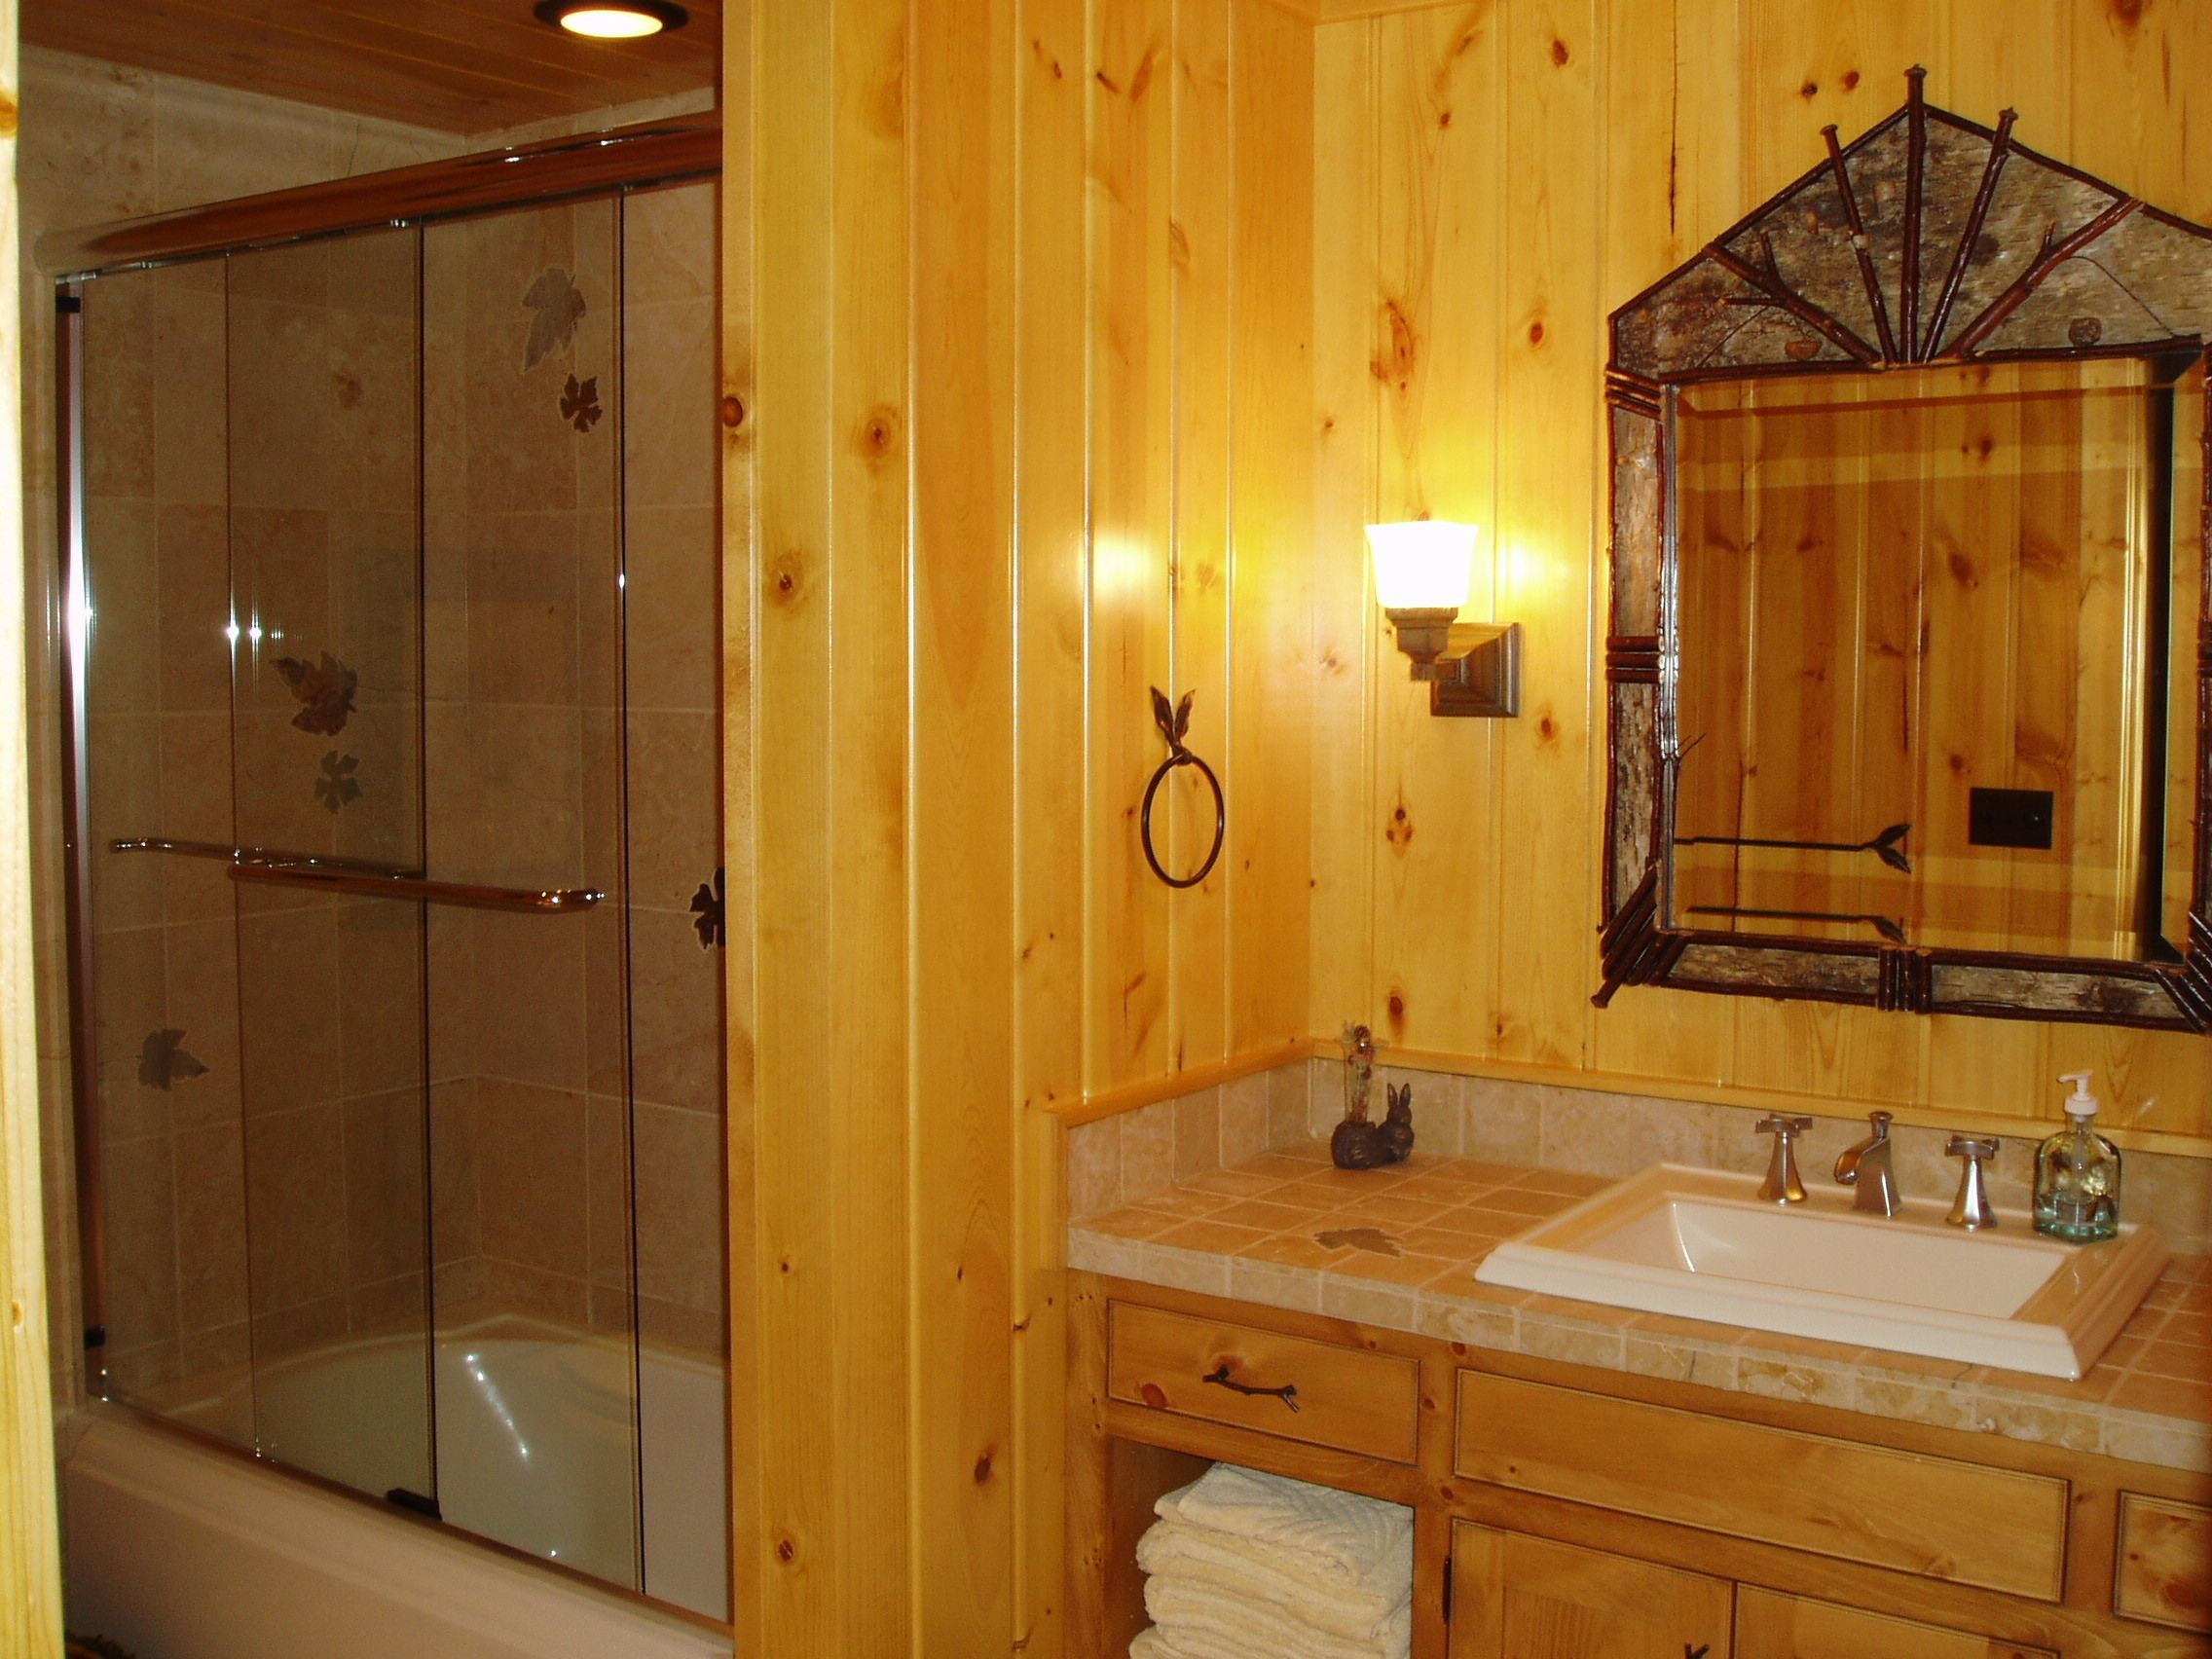 A Rustic Bathroom Works Great For The Guest Who Visit This Log